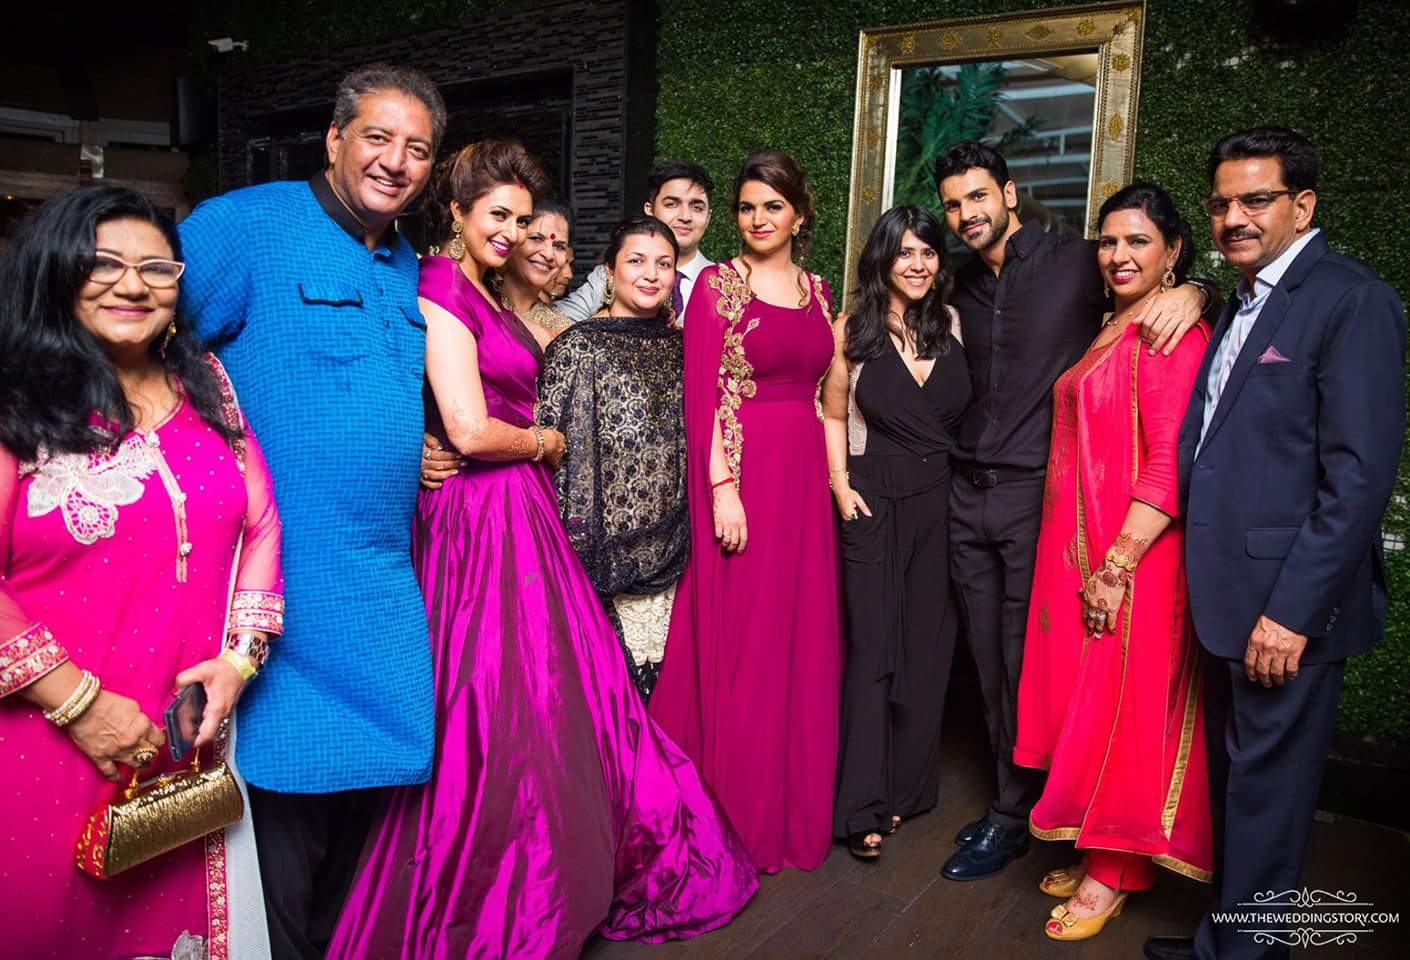 Vivek & Divyanka Tripathi Reception Photo with ekta kapoor